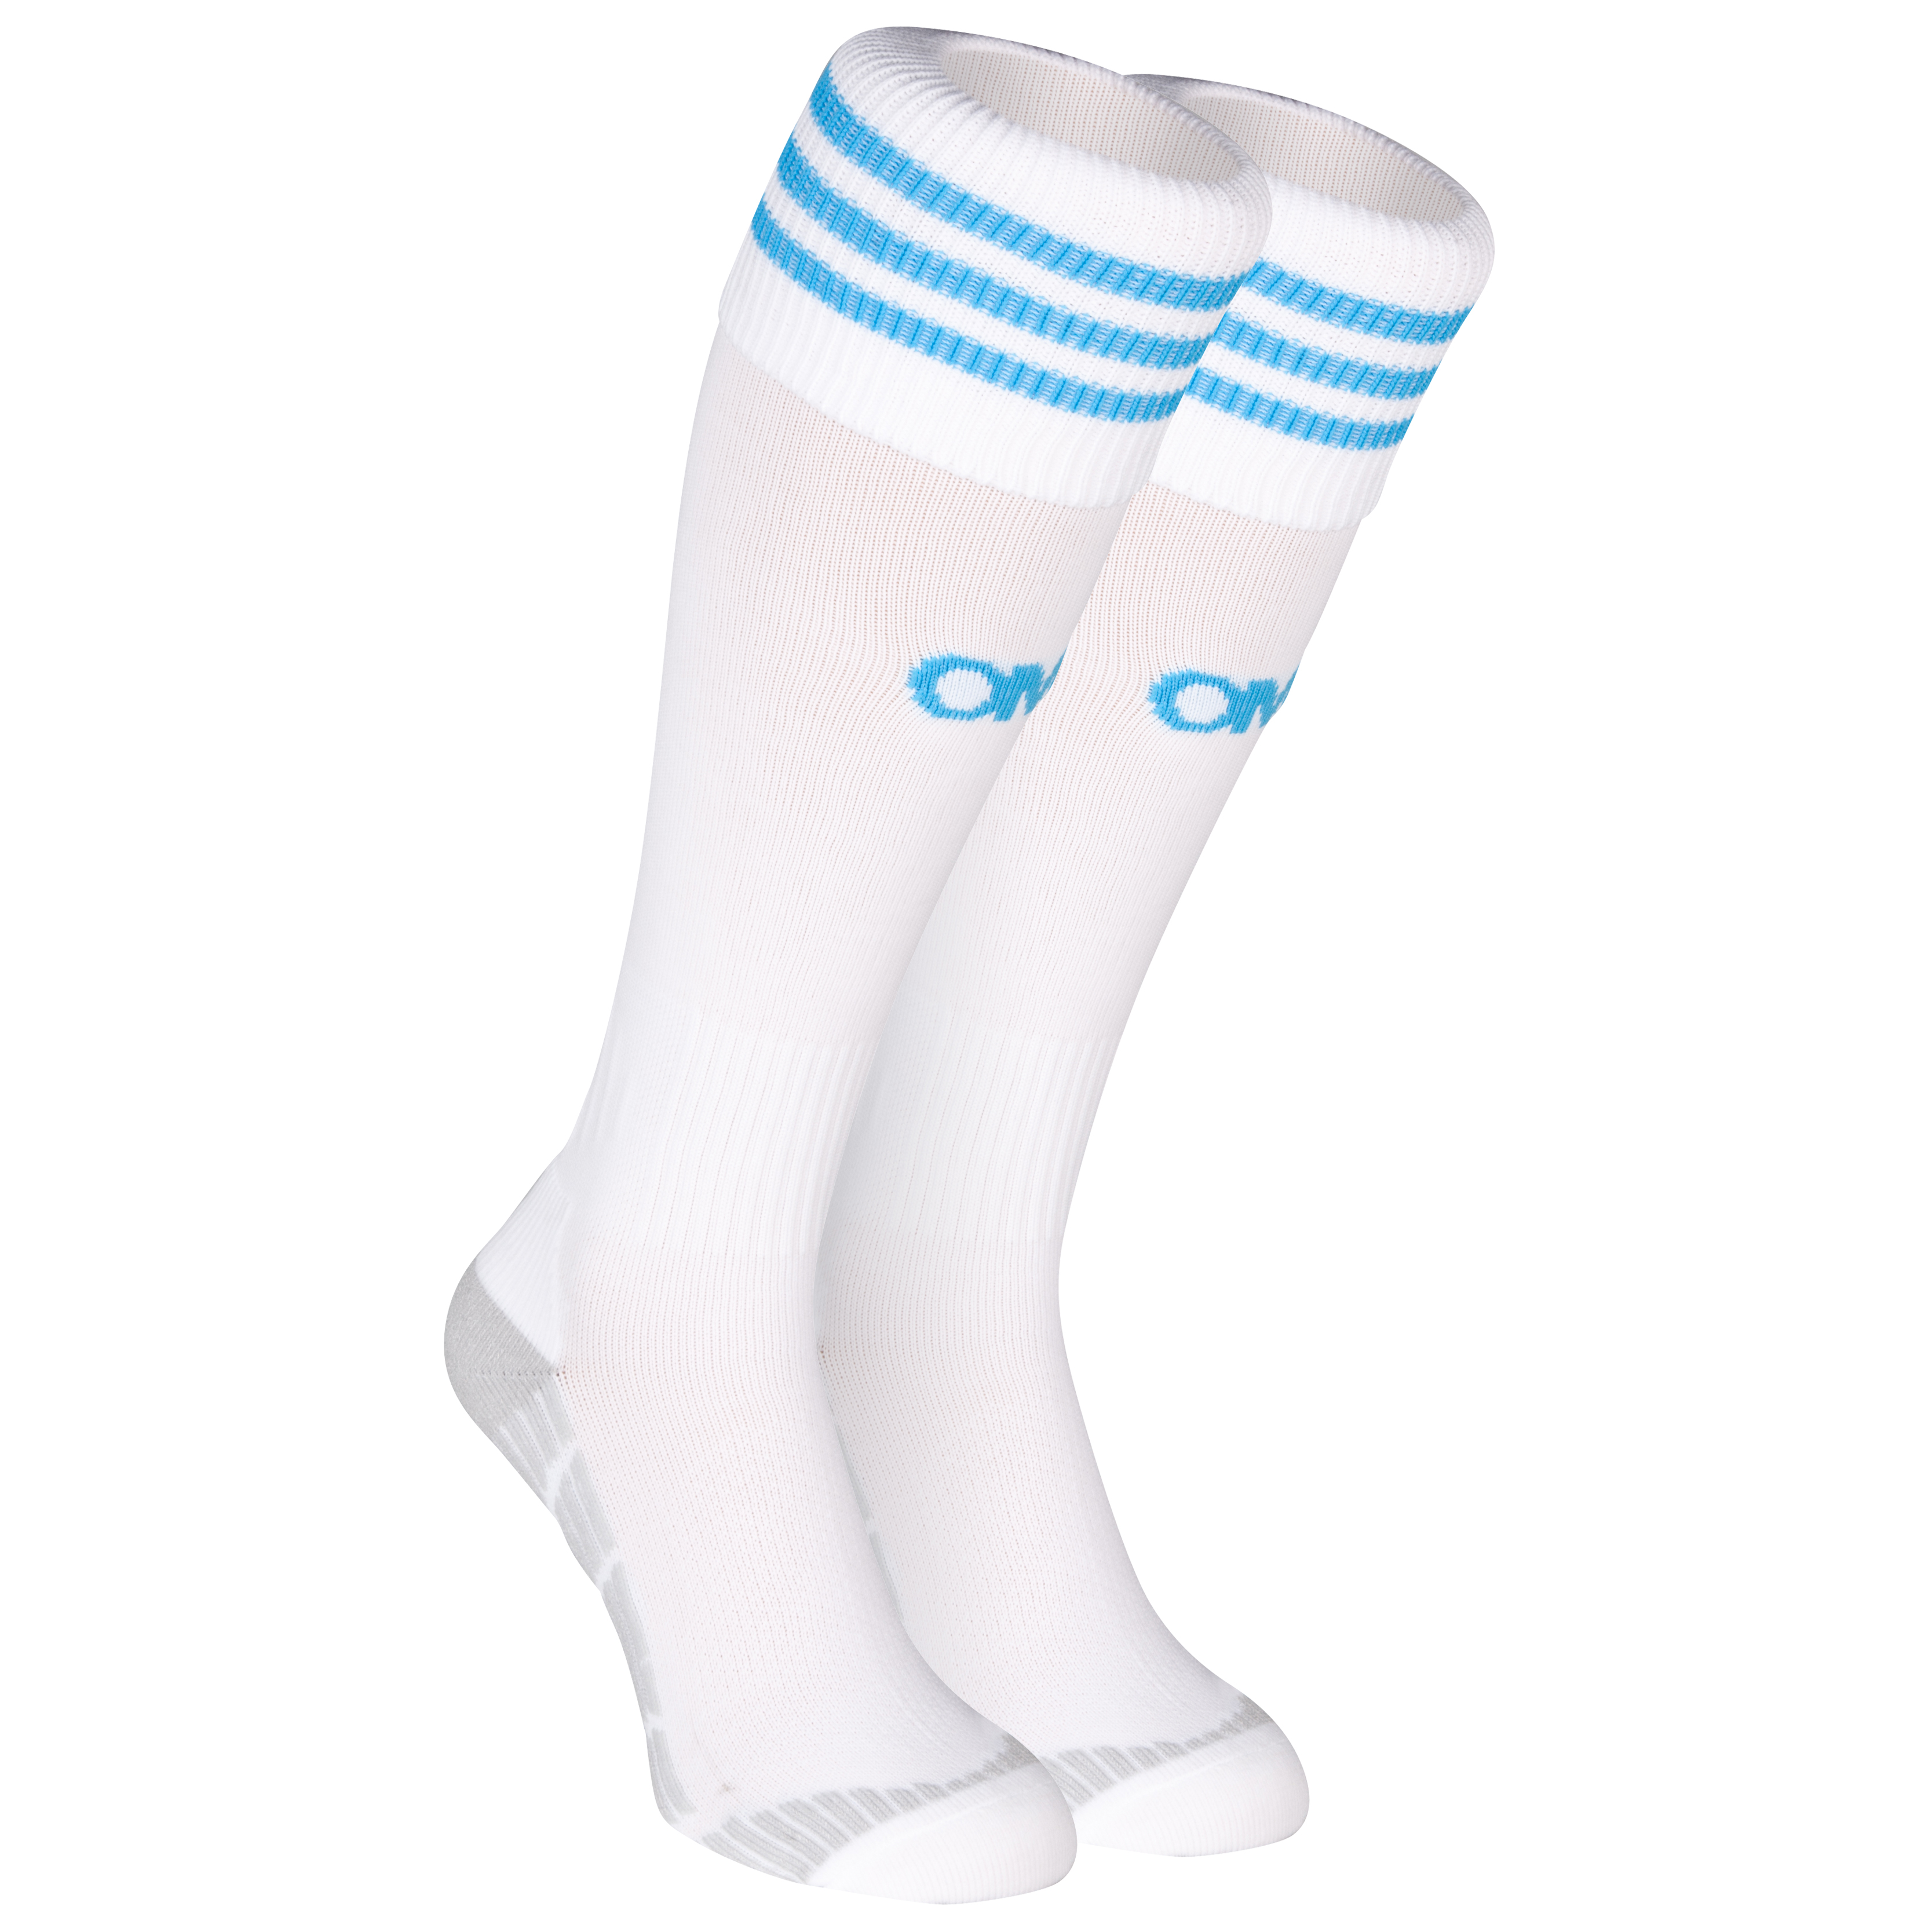 Olympique de Marseille Home Sock 2013/14 White